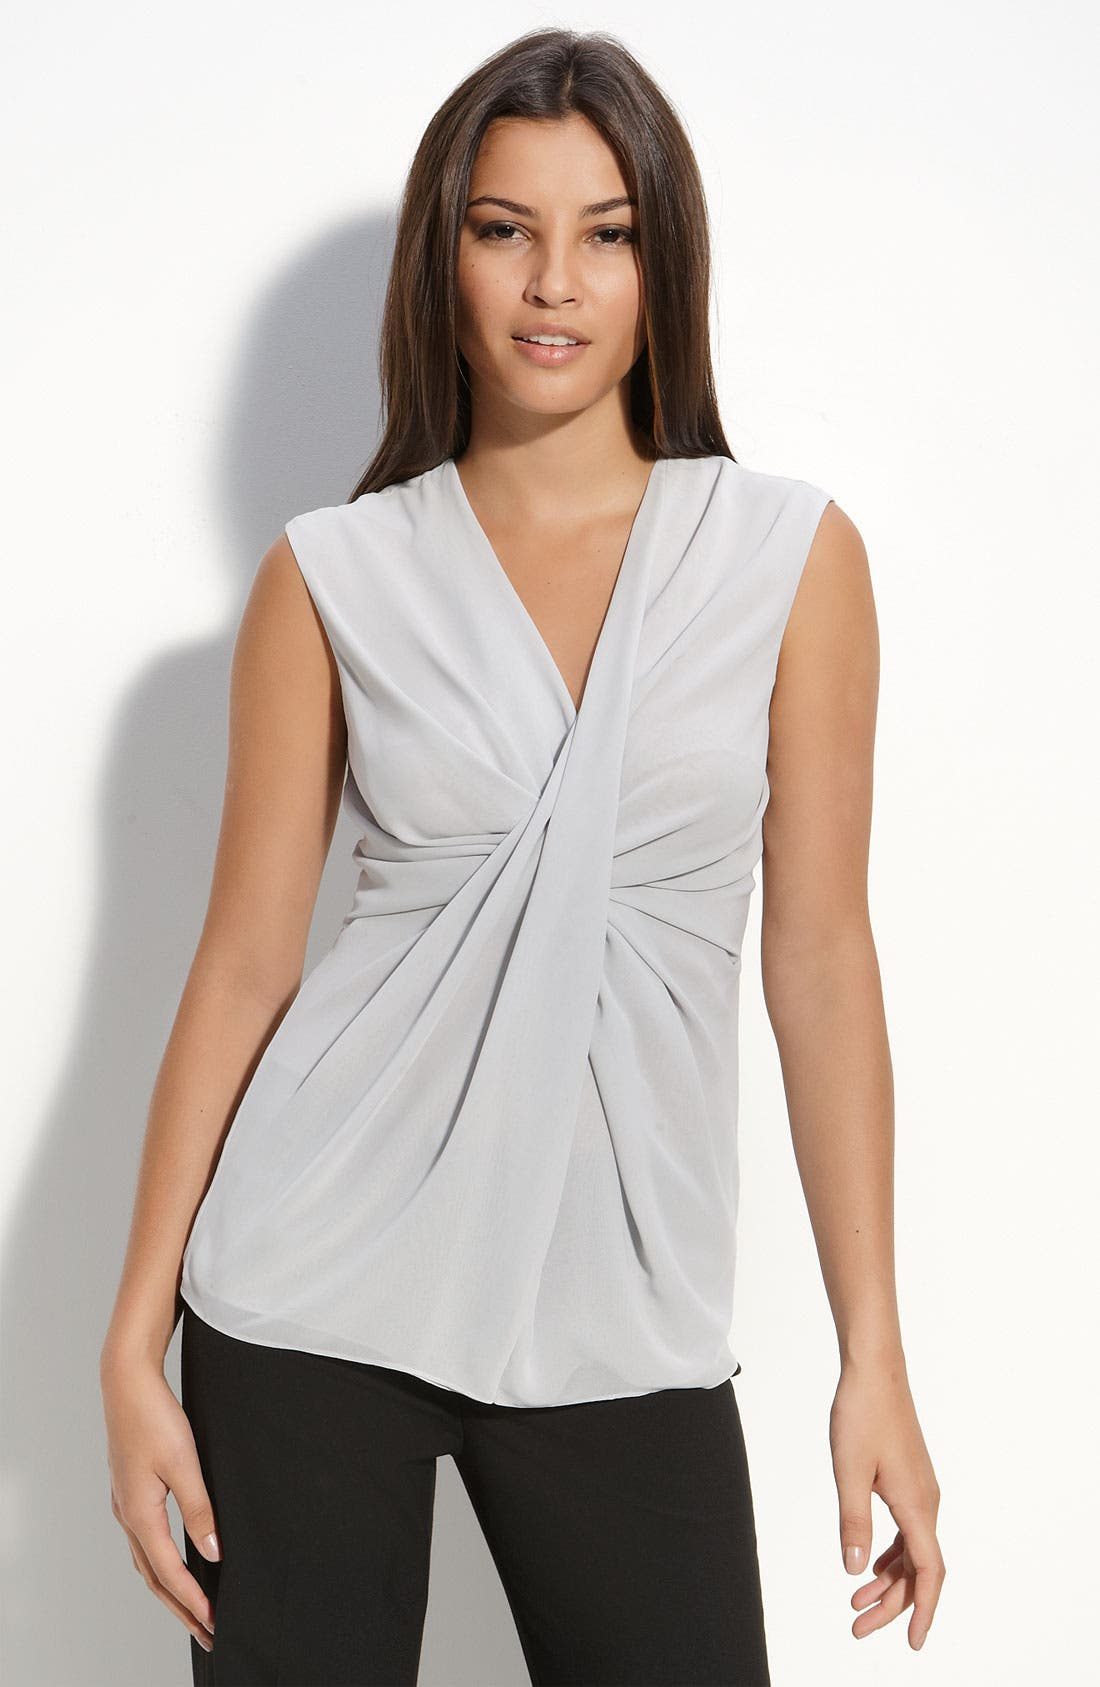 Alternate Image 1 Selected - MICHAEL Michael Kors Gathered Twist Sleeveless Top